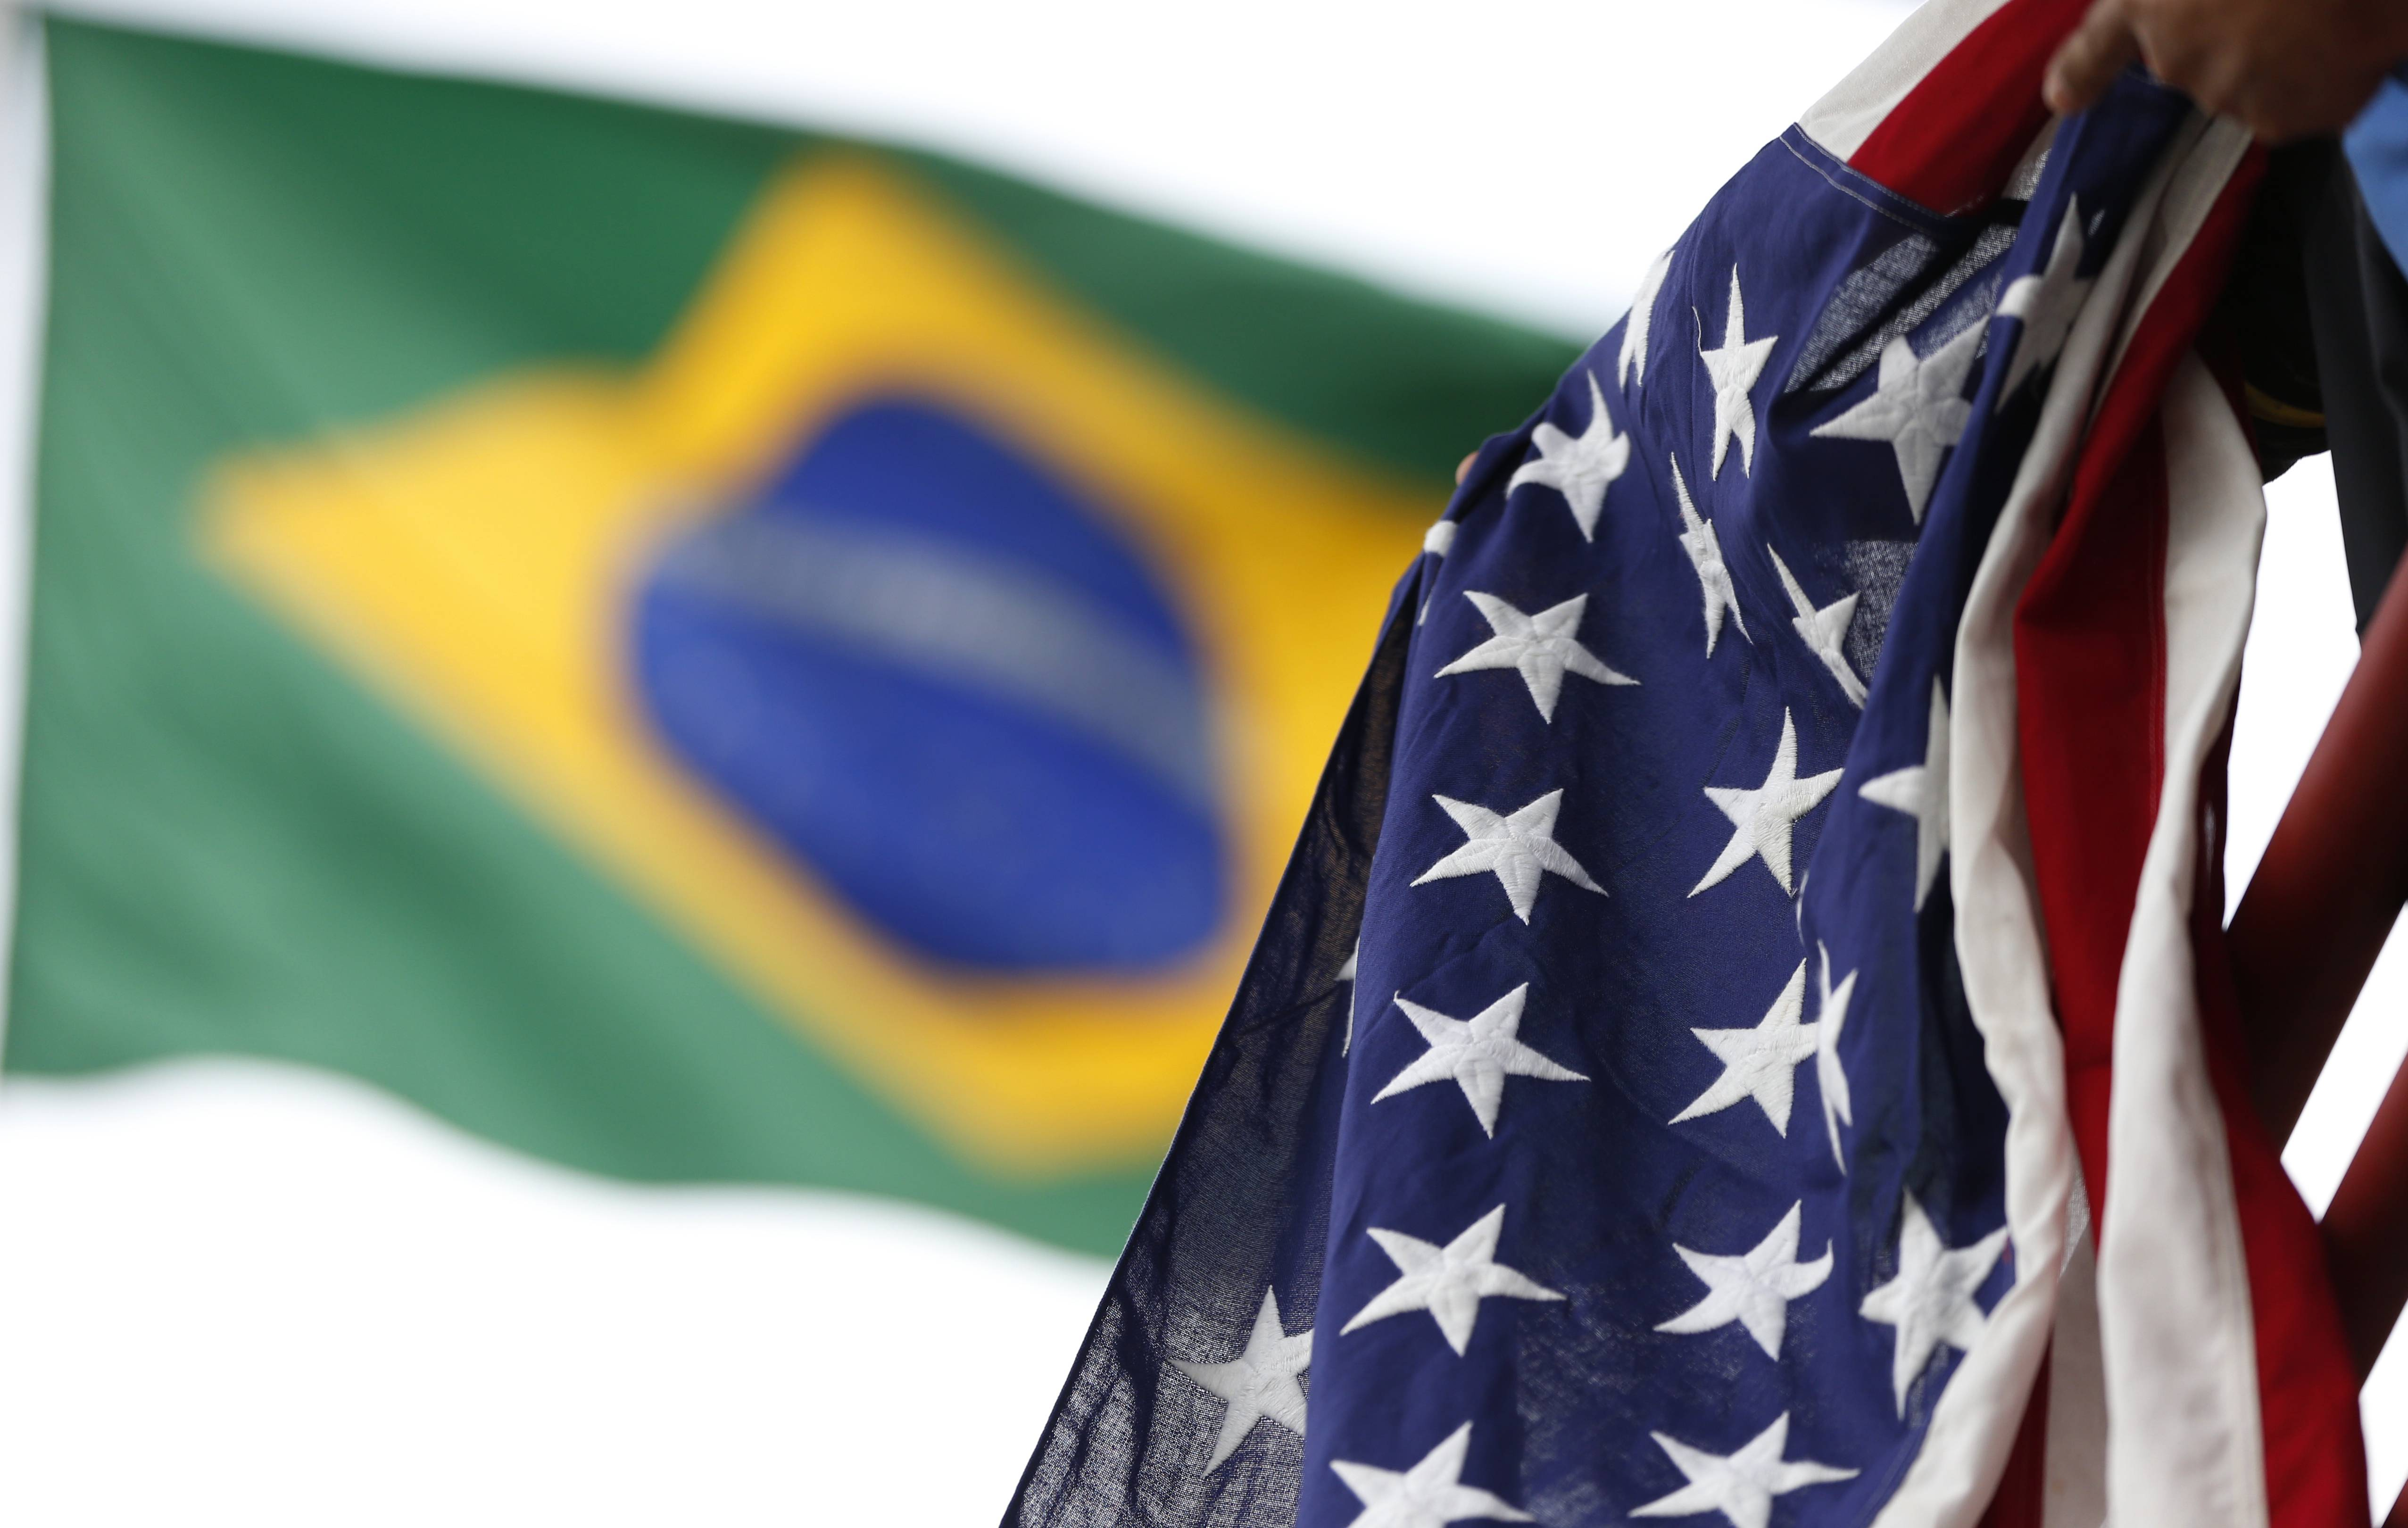 A United States flag owned by Jaime Oquendo of Houston hangs from a railing as a Brazil flag waves in the background as Oquendo watches the U.S. men's soccer team Wednesday during a training session at the Sao Paulo FC training center in Sao Paulo, Brazil. The U.S. will play in group G of the 2014 soccer World Cup.